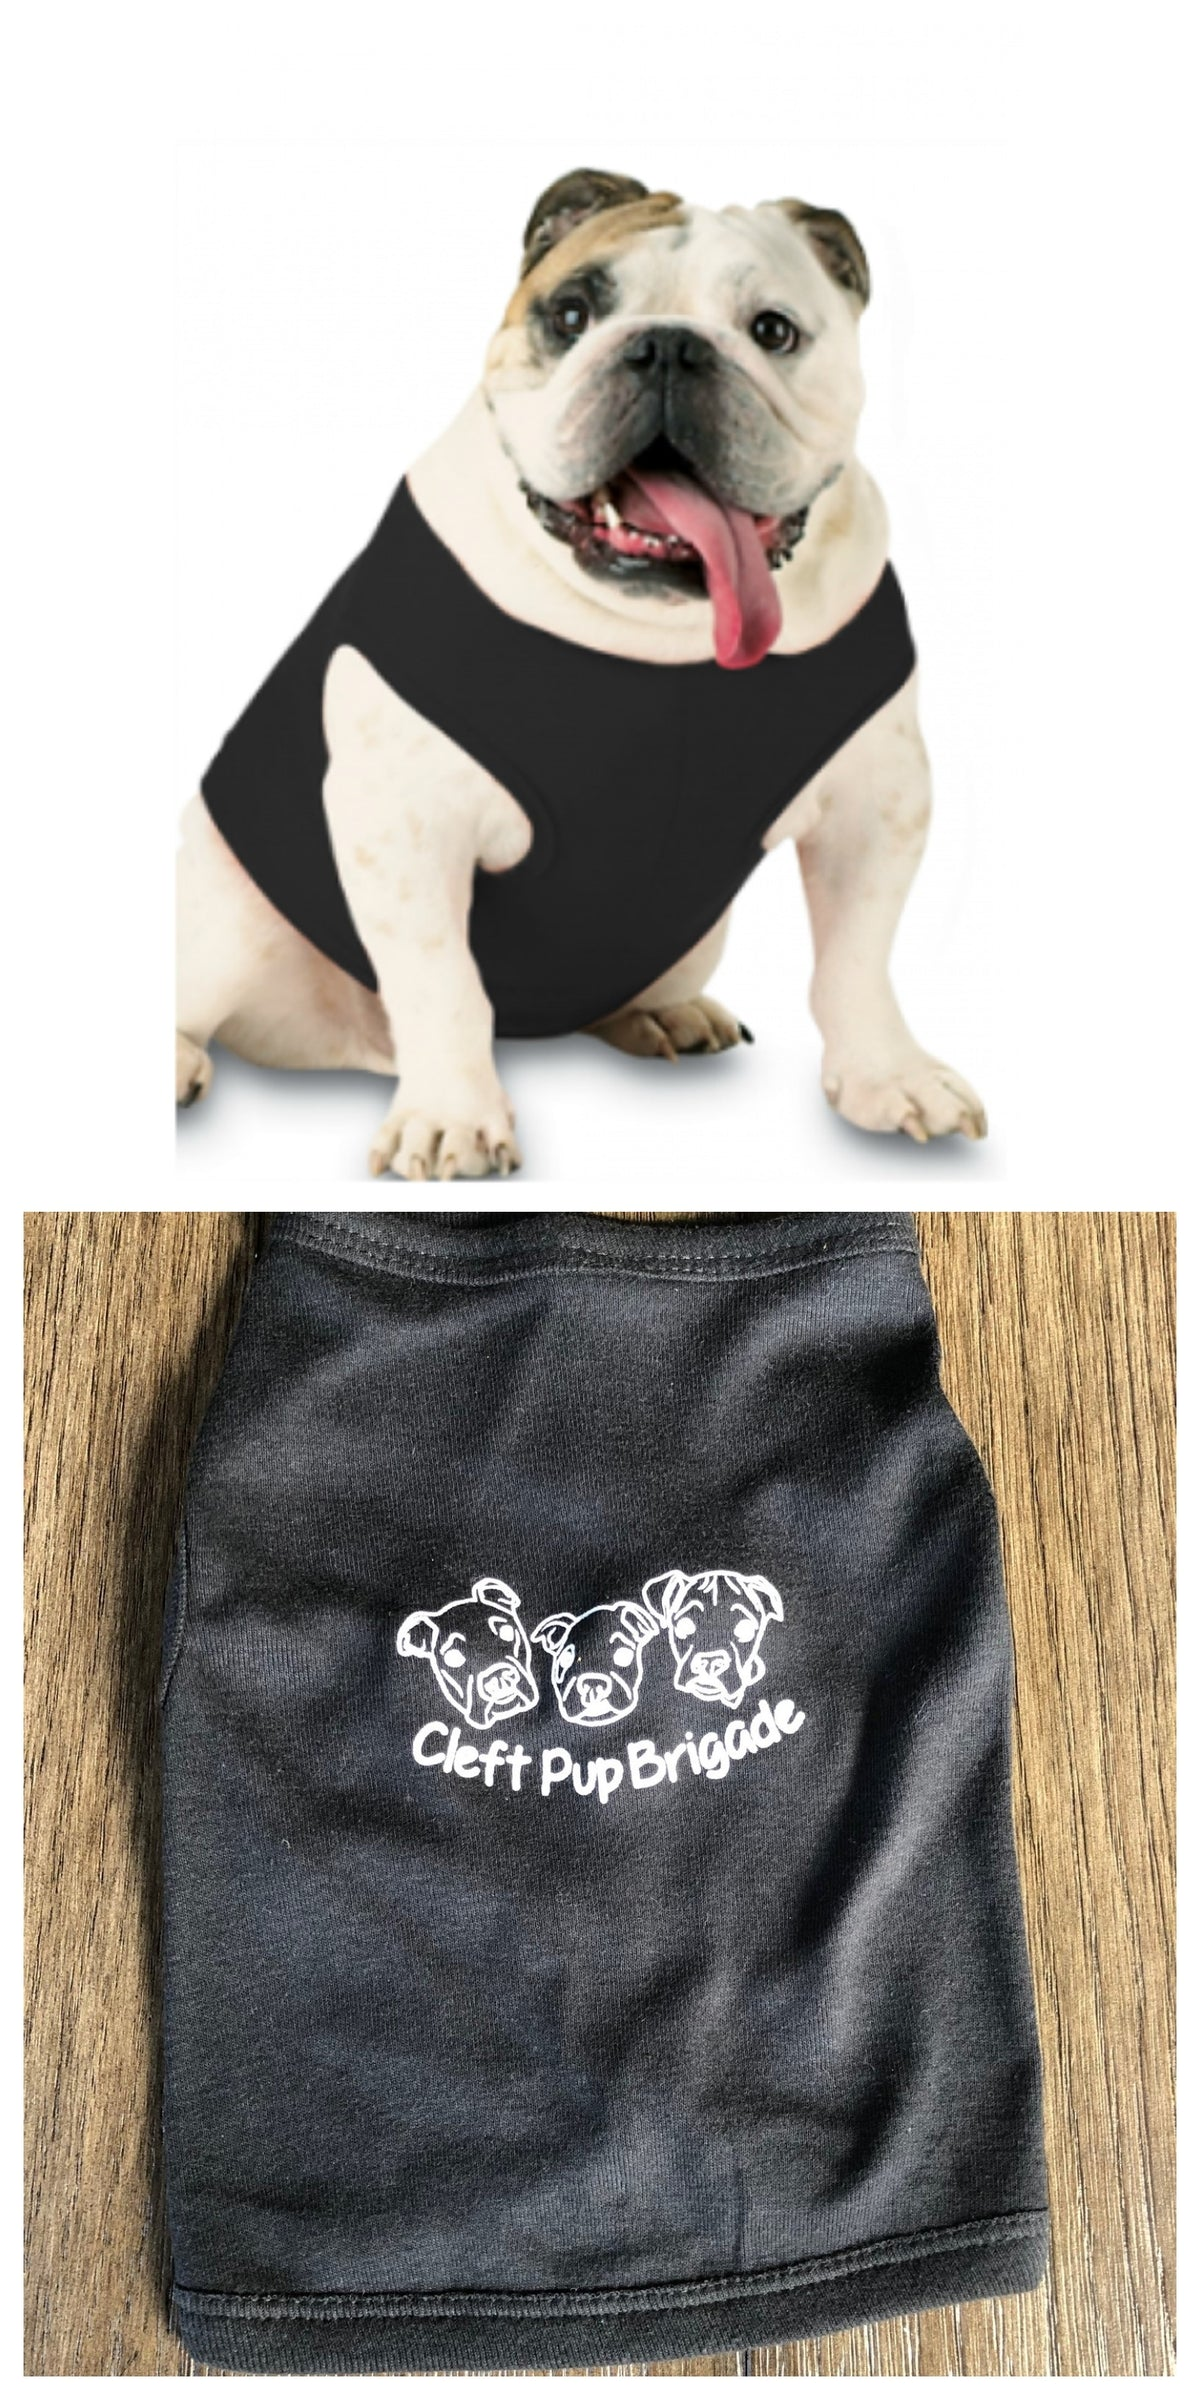 Cleft Pup Brigade -Doggie Tee - Ruff Life Rescue Wear